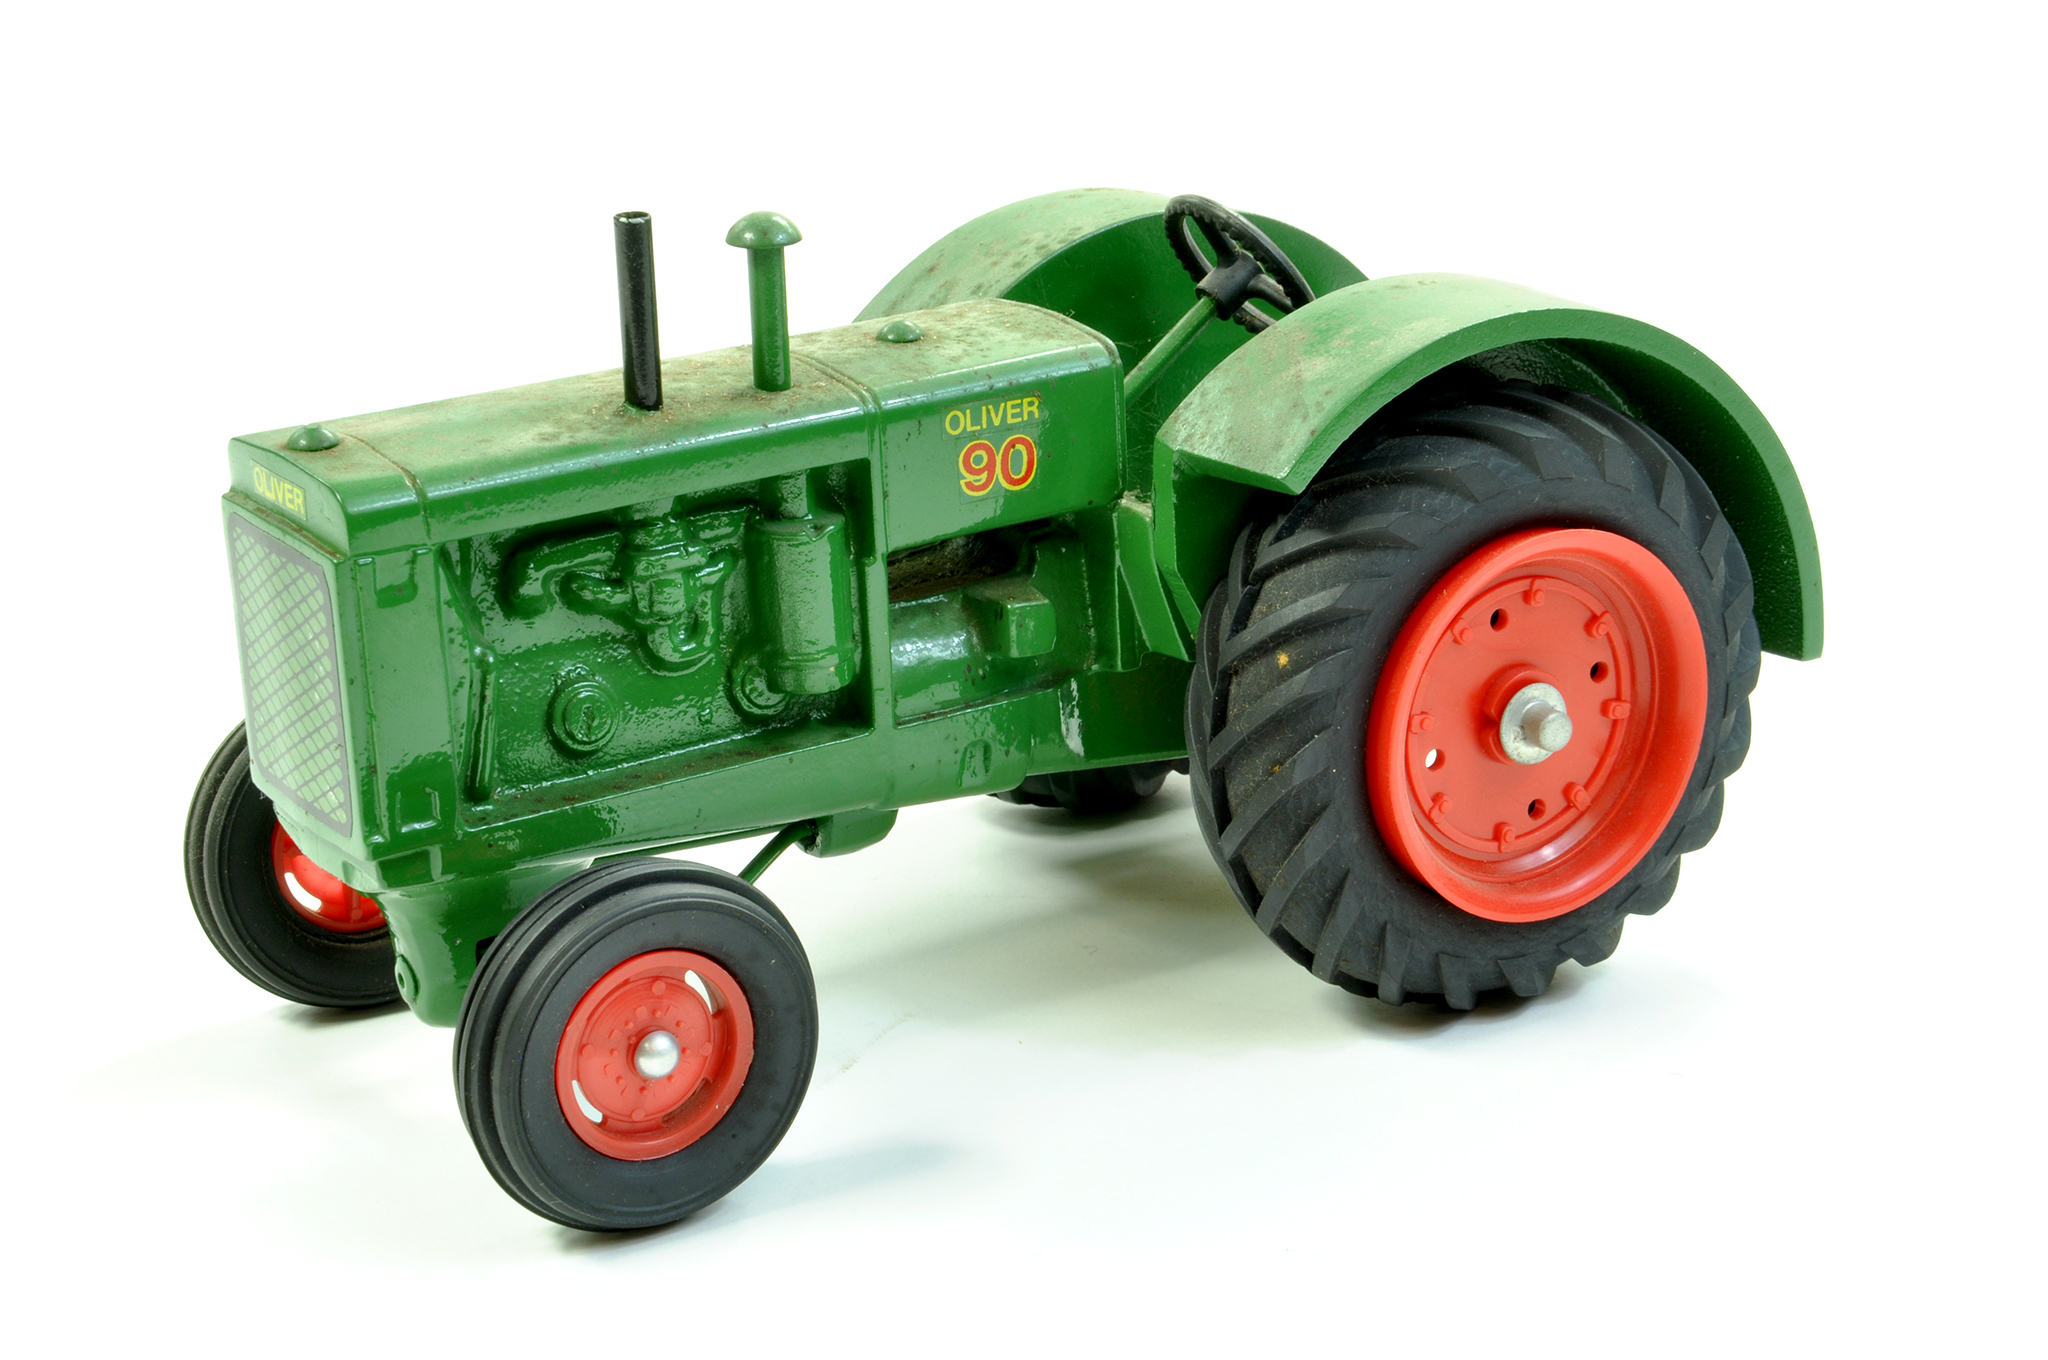 Lot 11 - Scale Models 1/16 diecast farm issue comprising Oliver 90 Vintage Tractor. A little dusty but